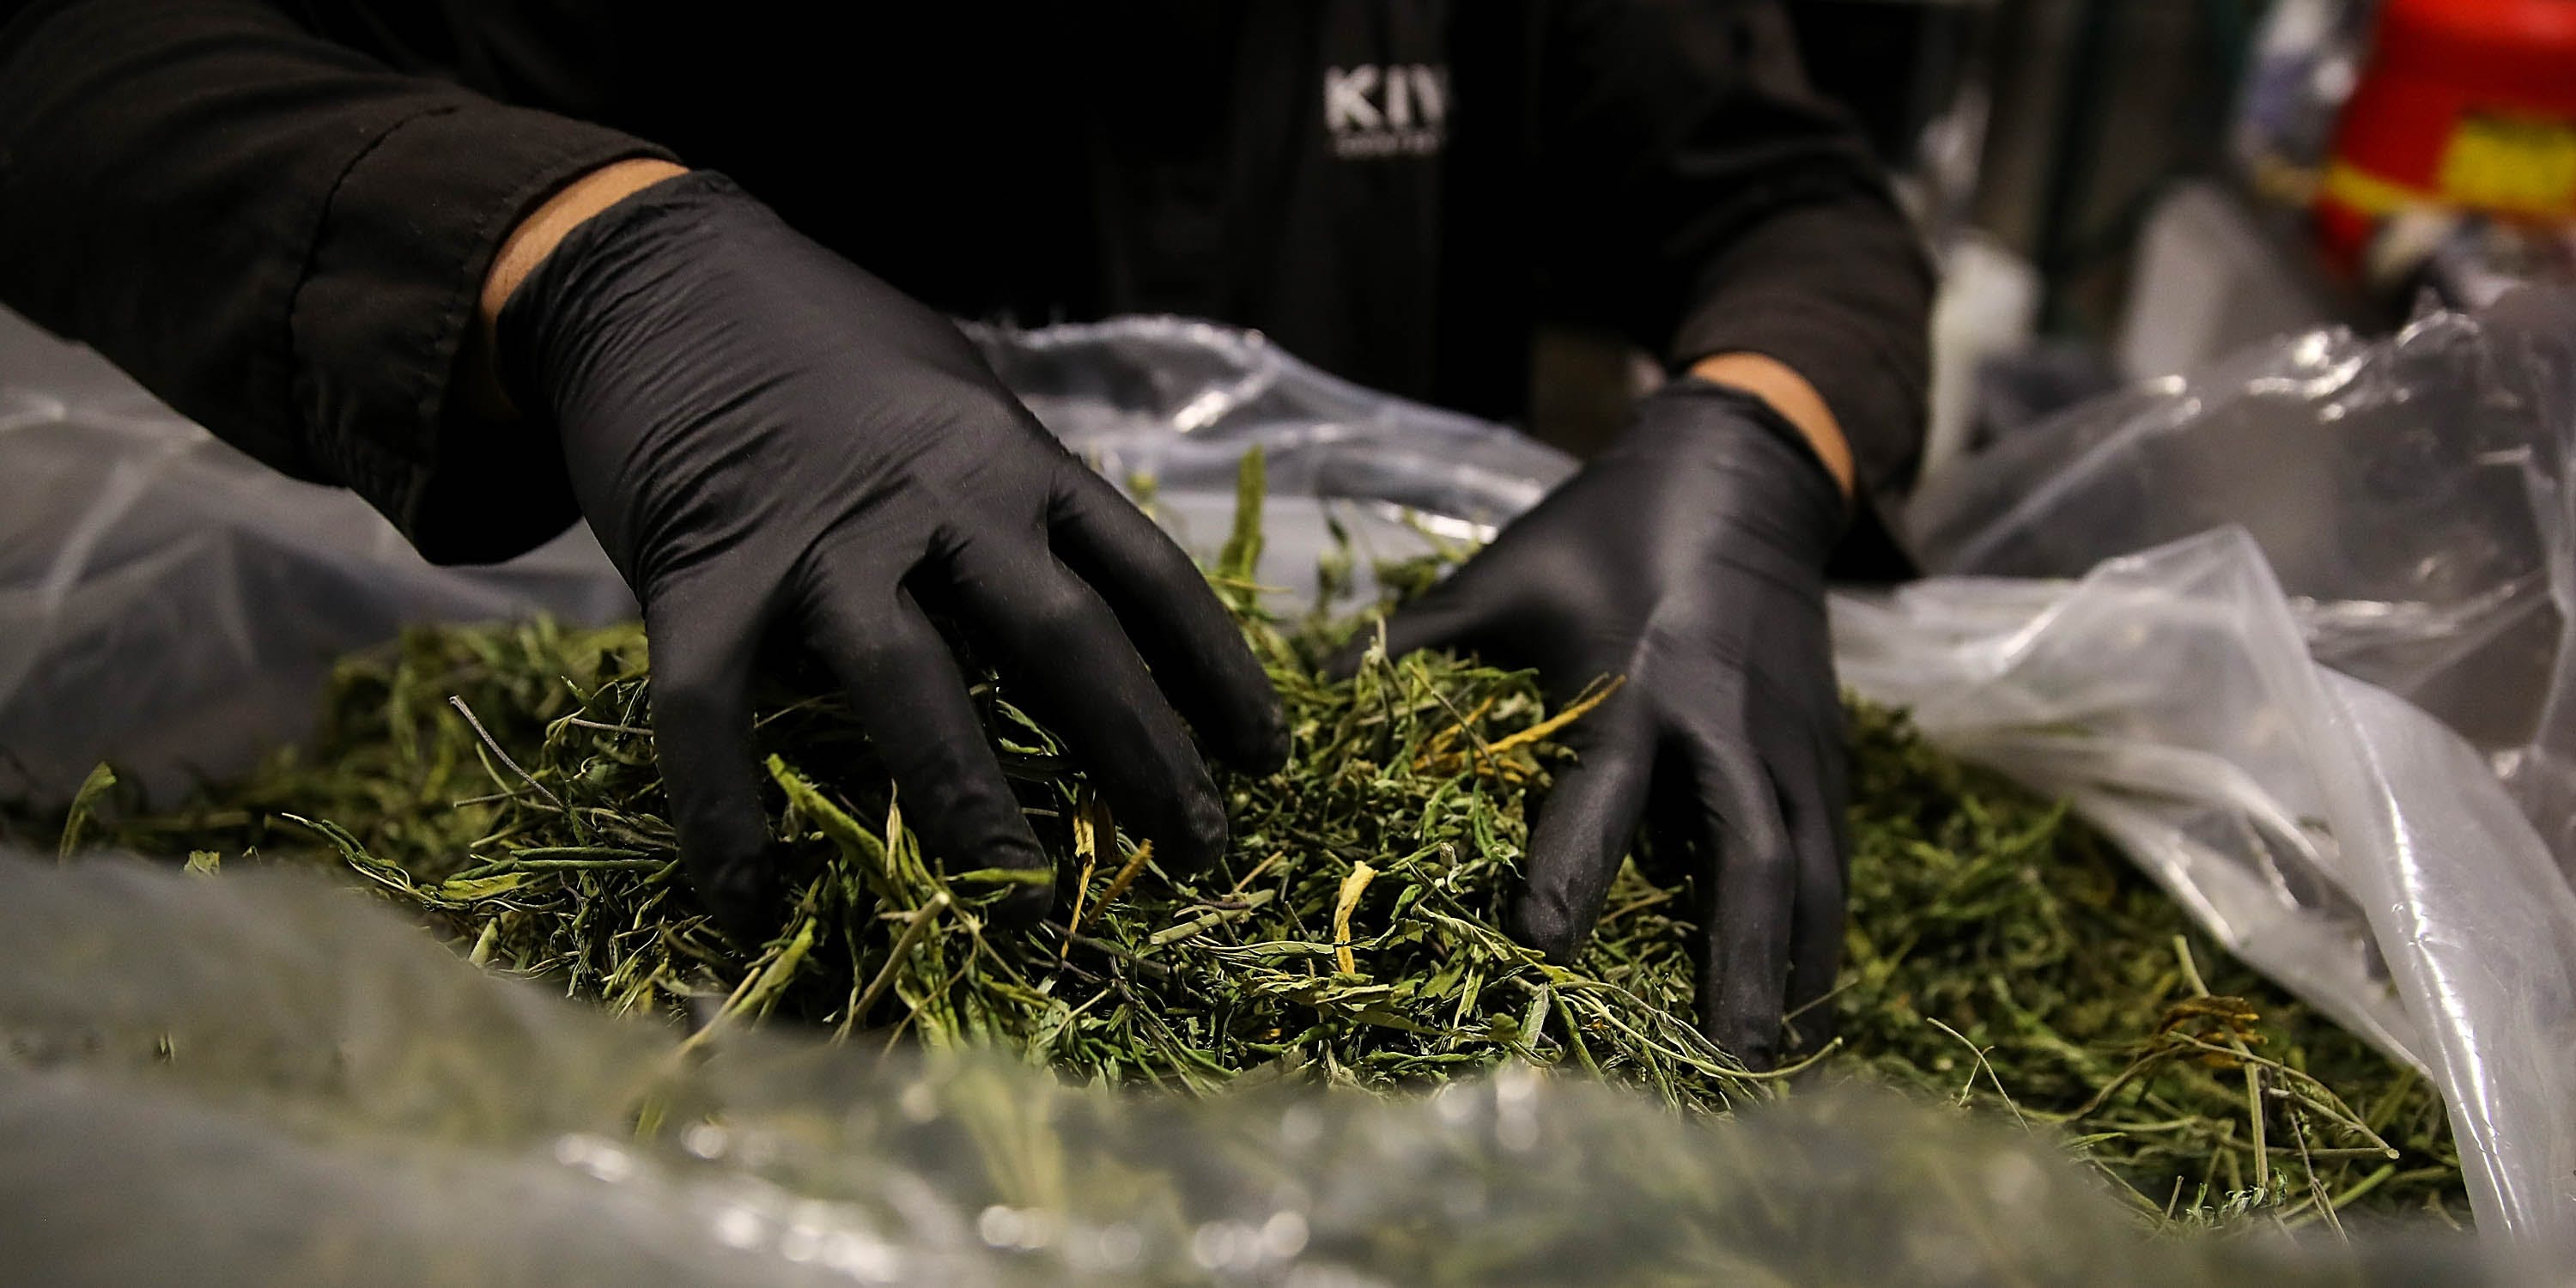 A worker looks through a bag of marijuana that will be used to make marijuana infused chocolate edibles at Kiva Confections. To make your own infused edibles you'll have to know how to decarb weed.